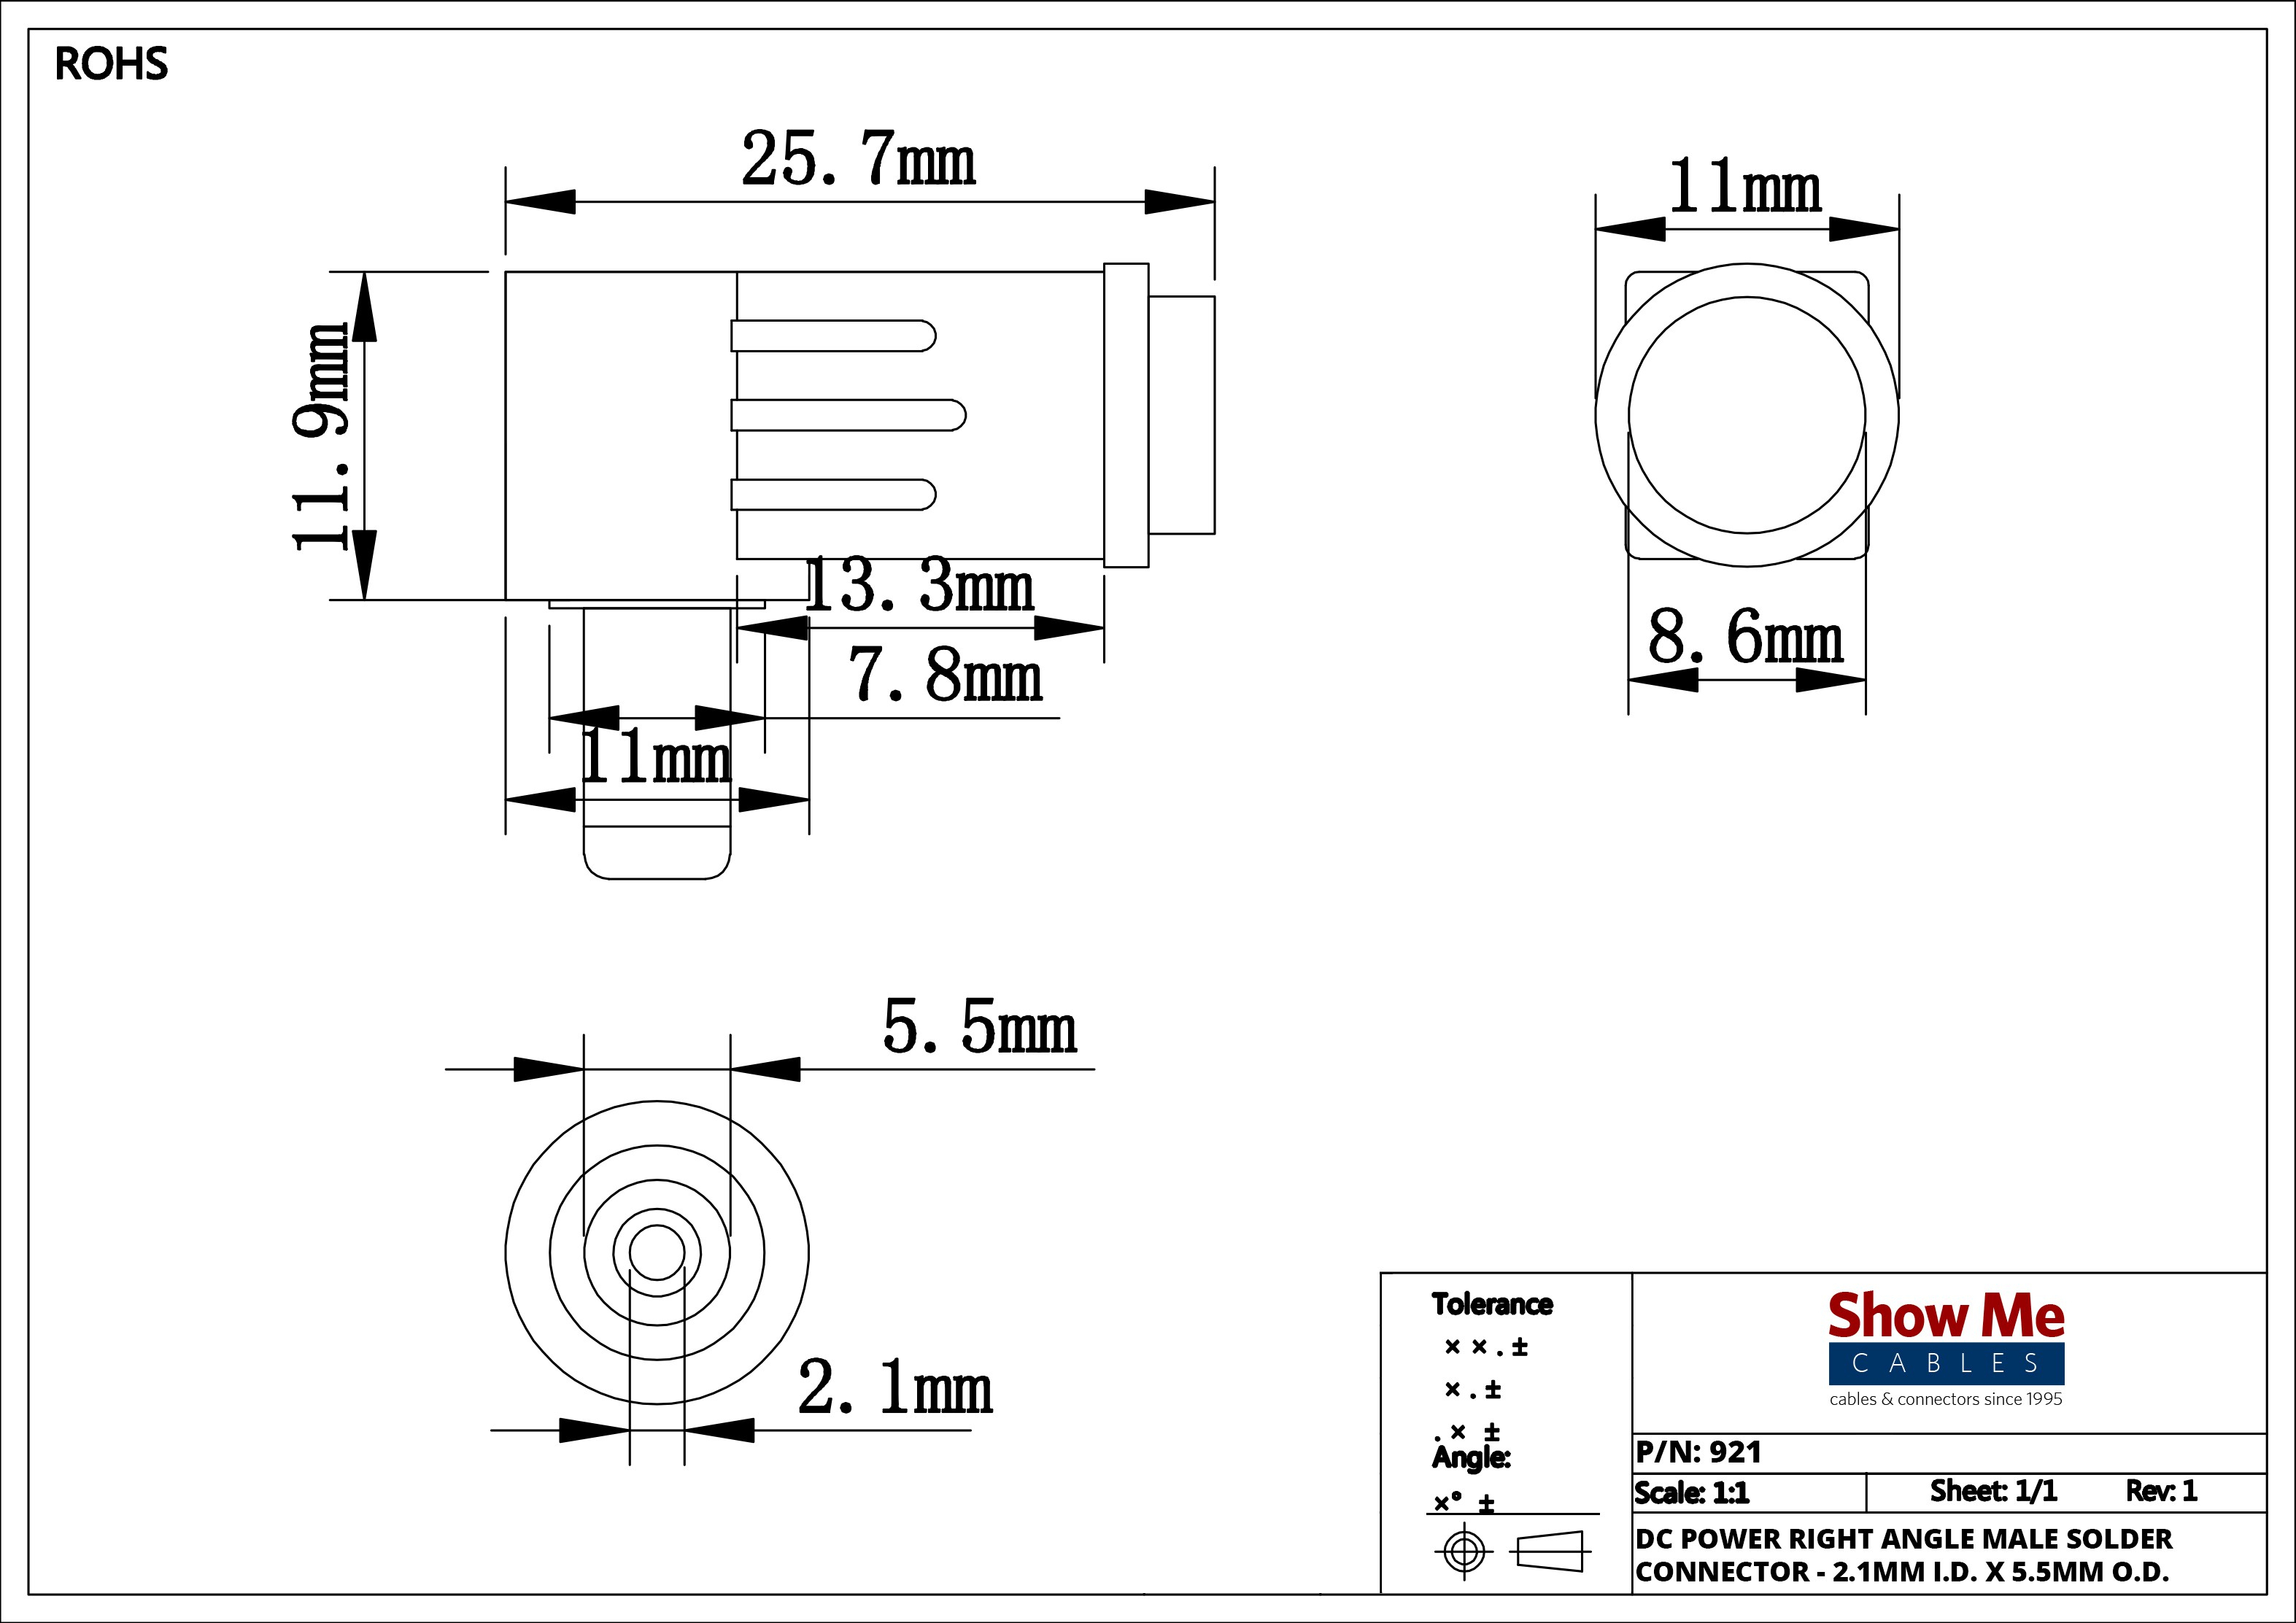 house wiring diagram examples Collection-home speaker wiring diagram Collection 3 5 Mm Stereo Jack Wiring Diagram Elegant 2 5mm DOWNLOAD Wiring Diagram 6-t